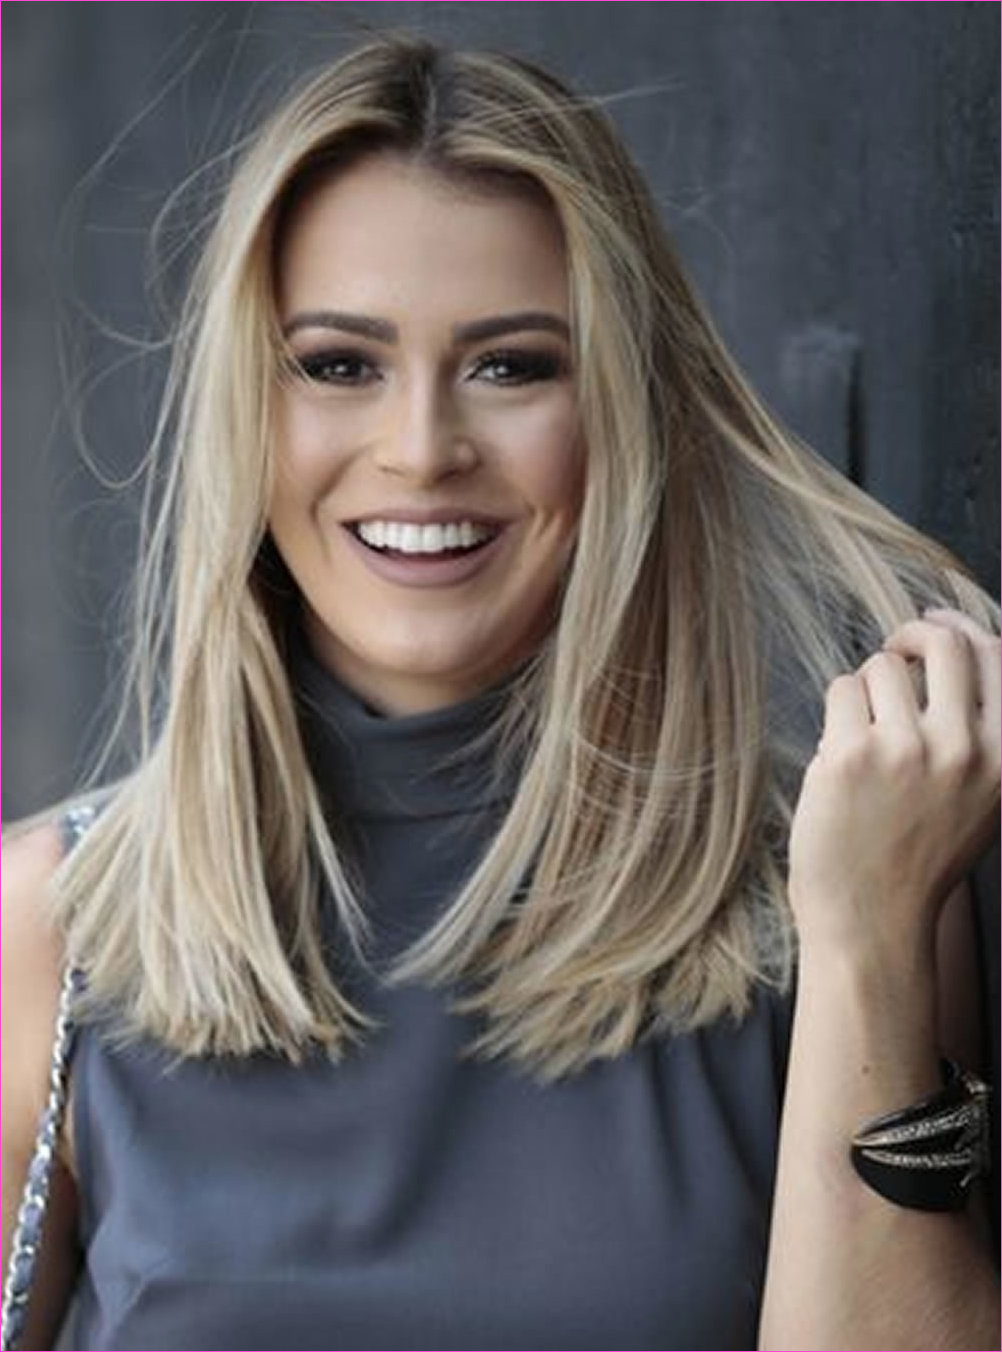 Medium Length Haircut Images and Hair Color Ideas for Medium Hair